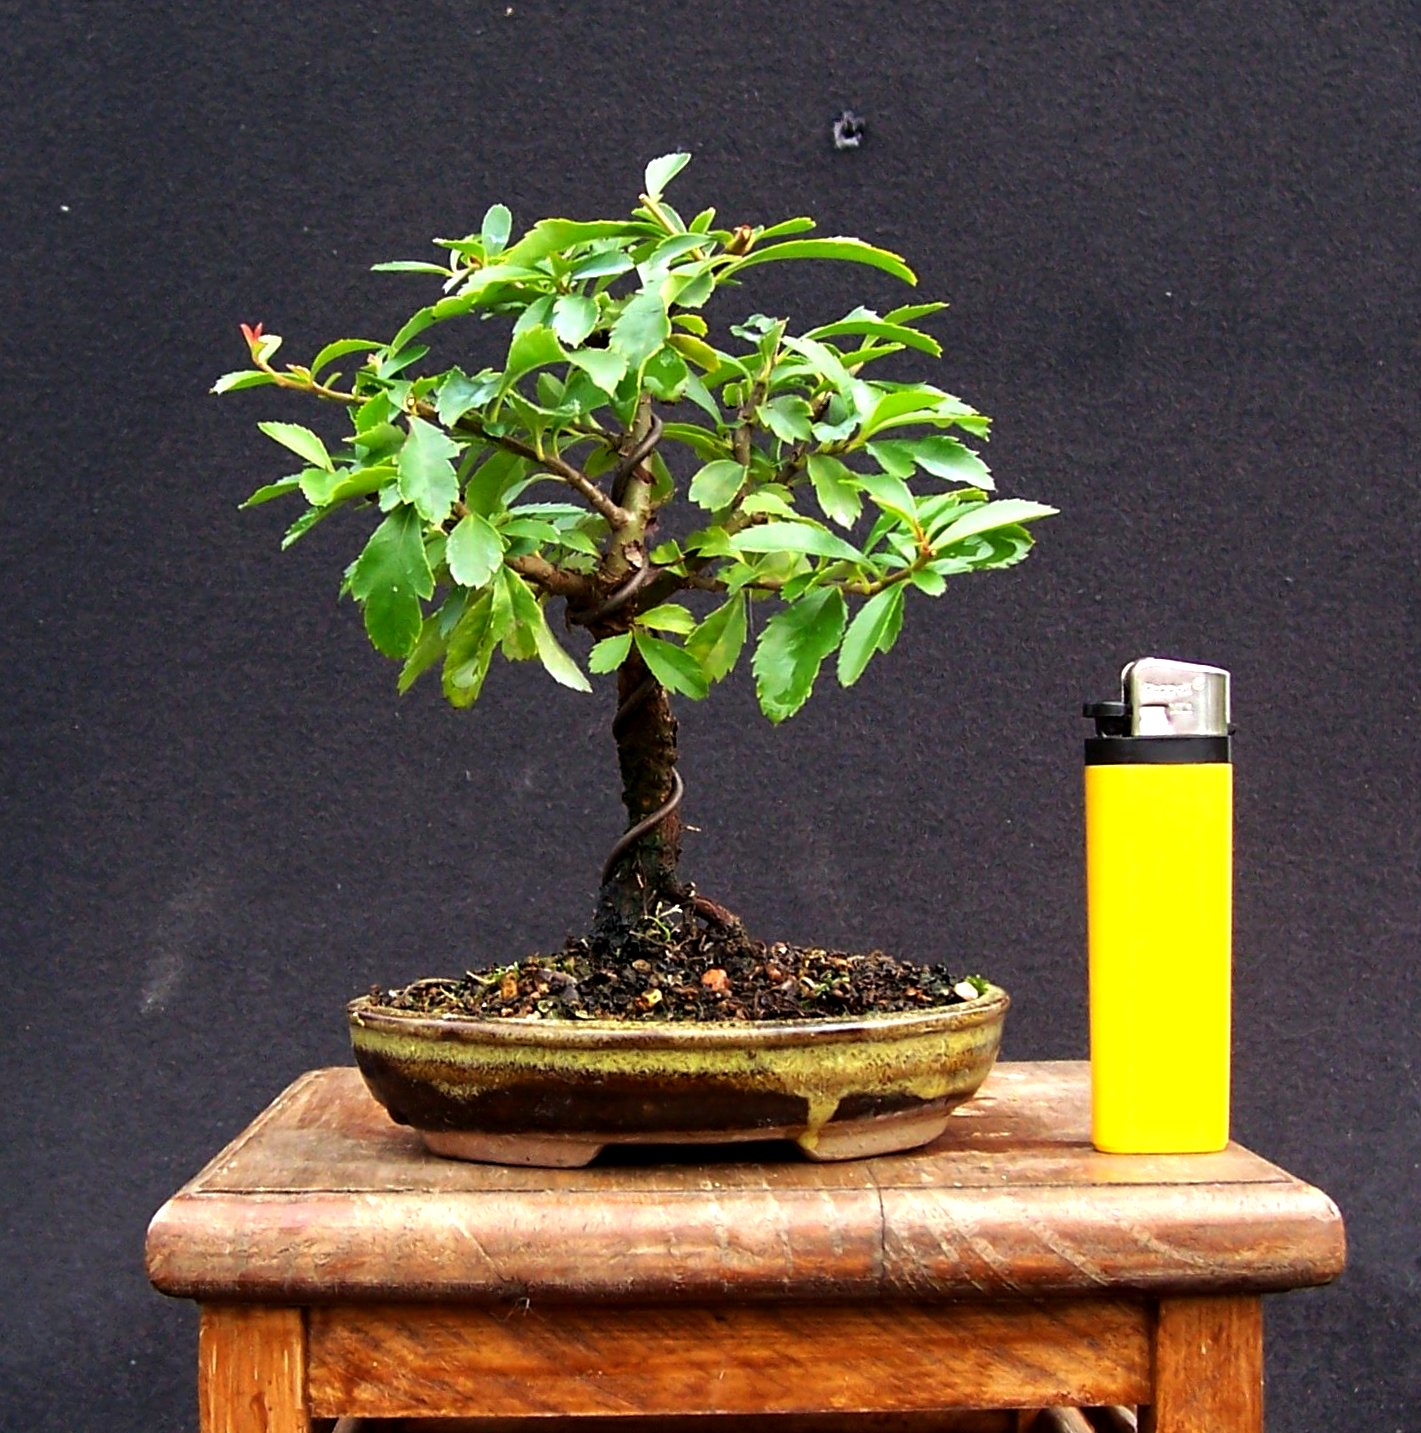 MiKo Bonsai Mame And Shohin Bonsai